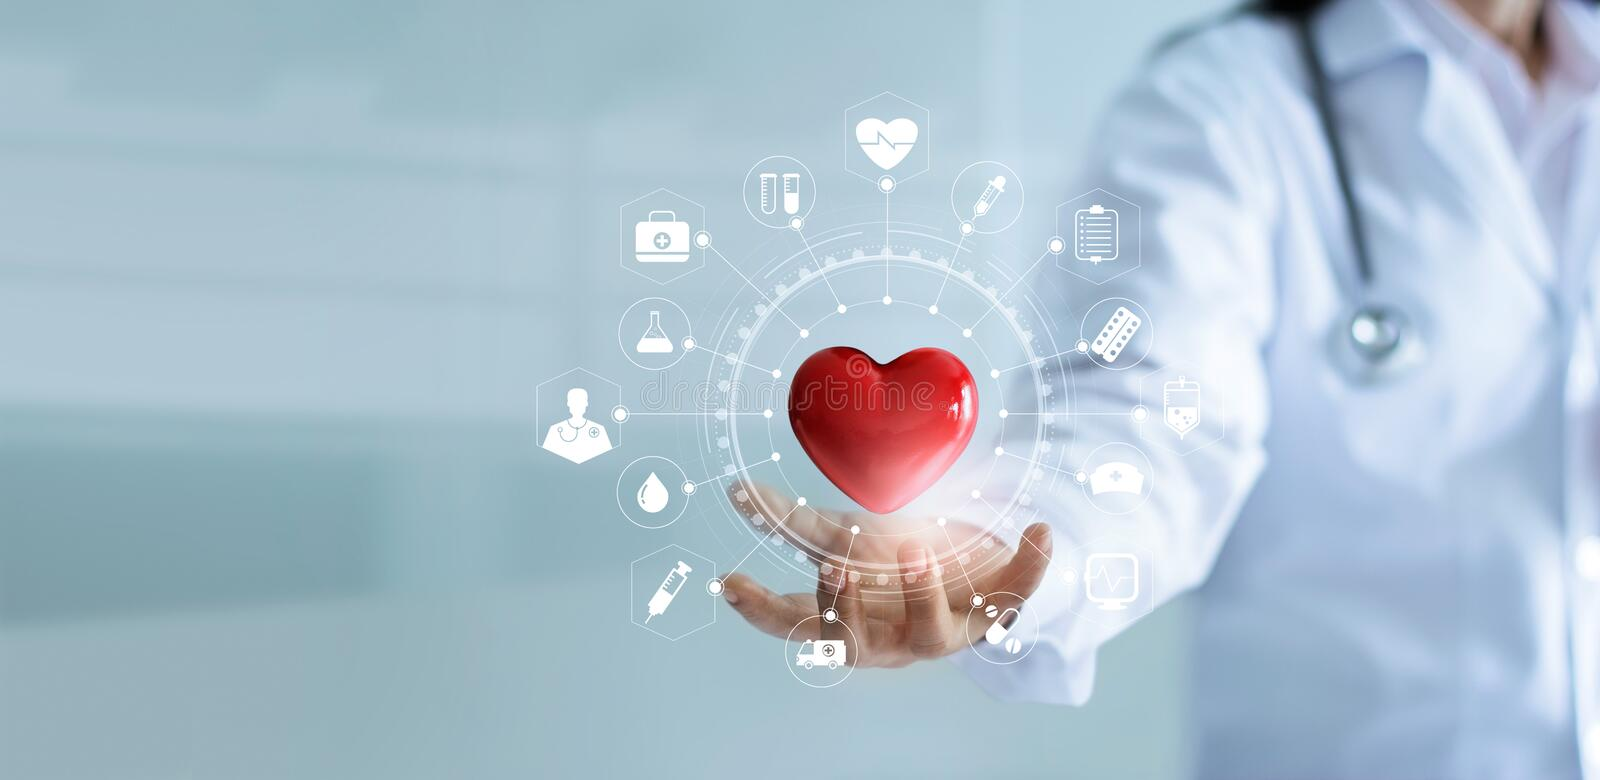 Medicine doctor holding red heart shape with medical icon network. Medicine doctor holding red heart shape in hand with medical icon network connection modern stock photo